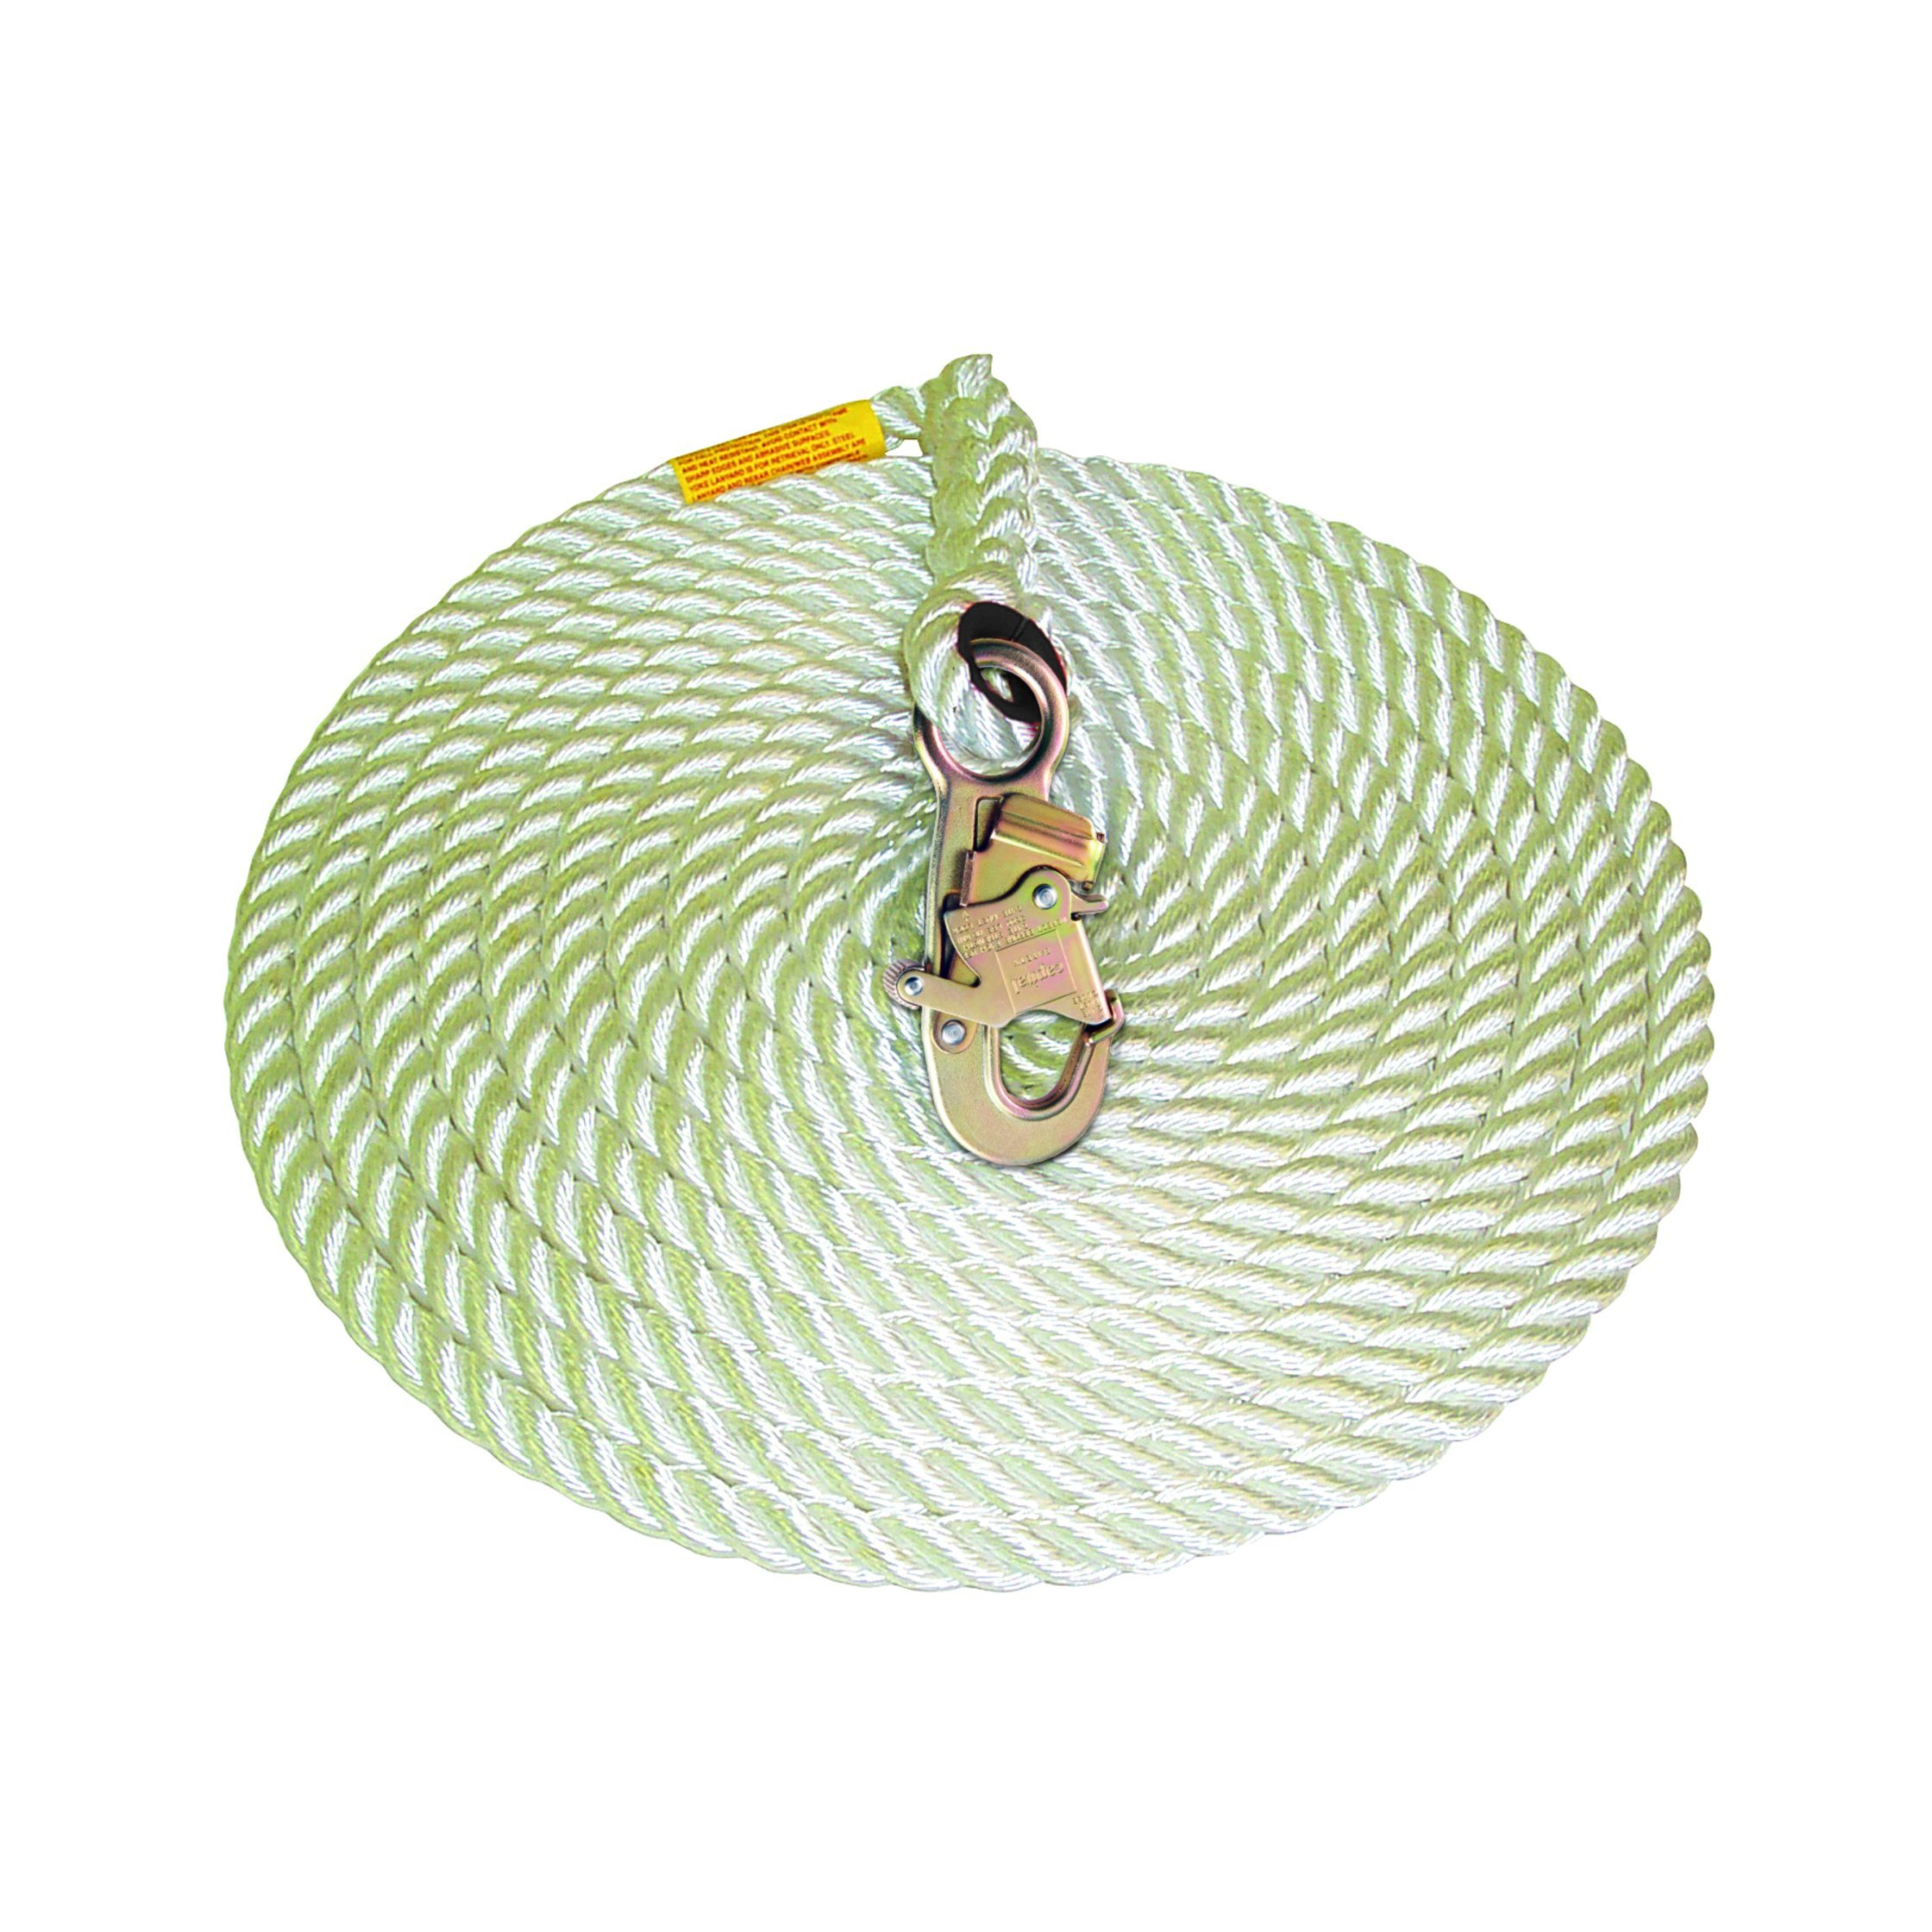 3M DBI-SALA 1202794 Vertical Systems, 5/8'' Polyester Polypropylene, 50' Rope Lifeline, with Snaphook, White with Orange Tracer